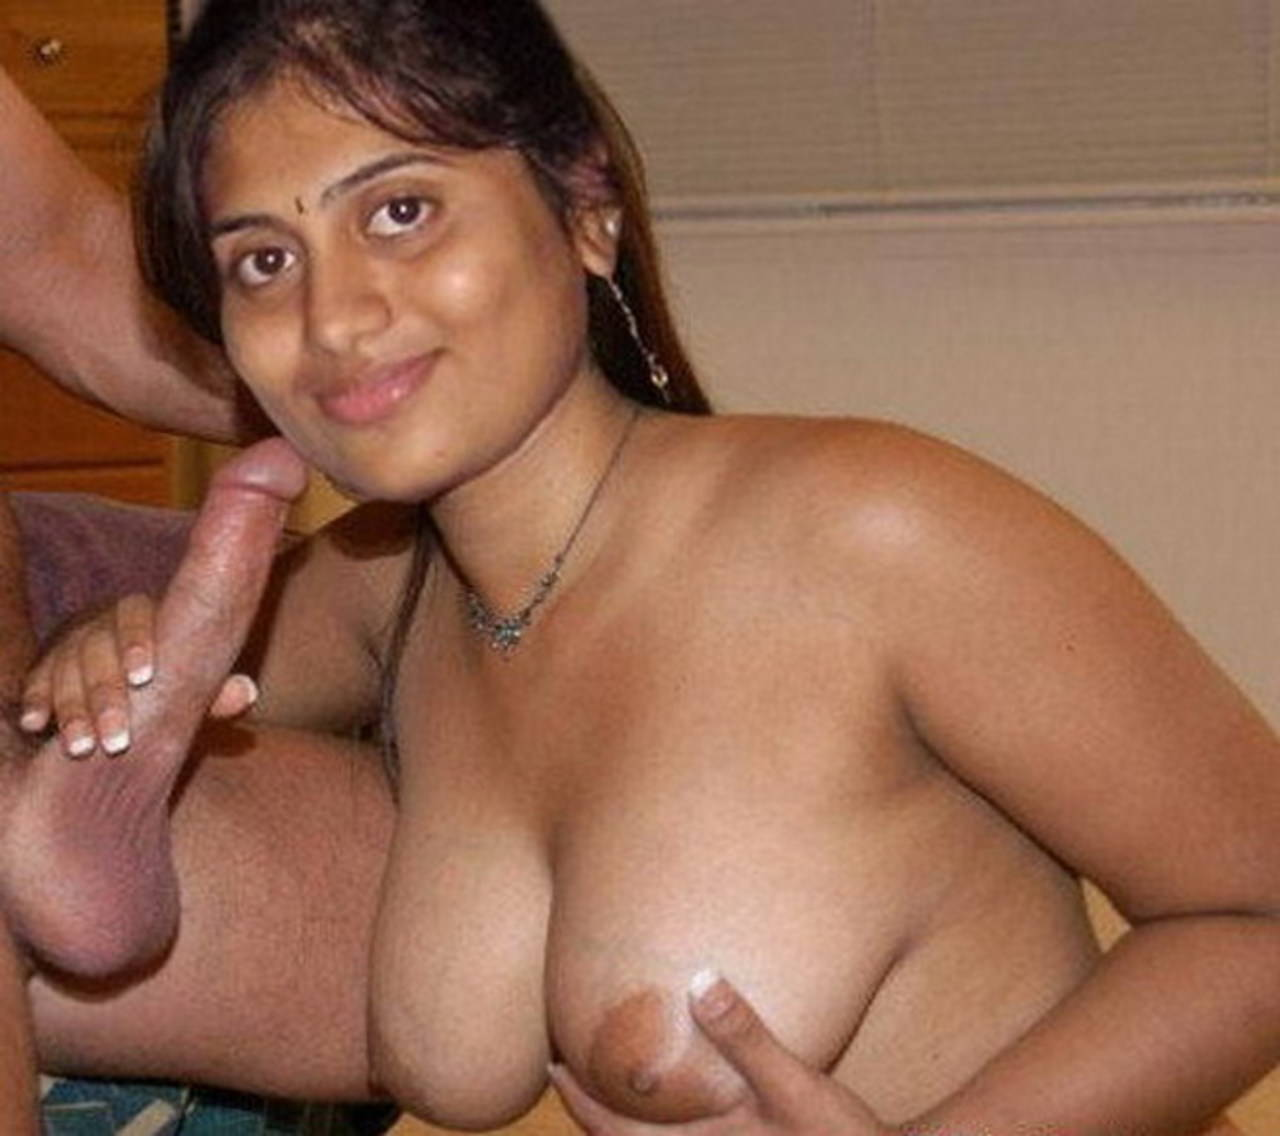 Naked indian women images porno photos